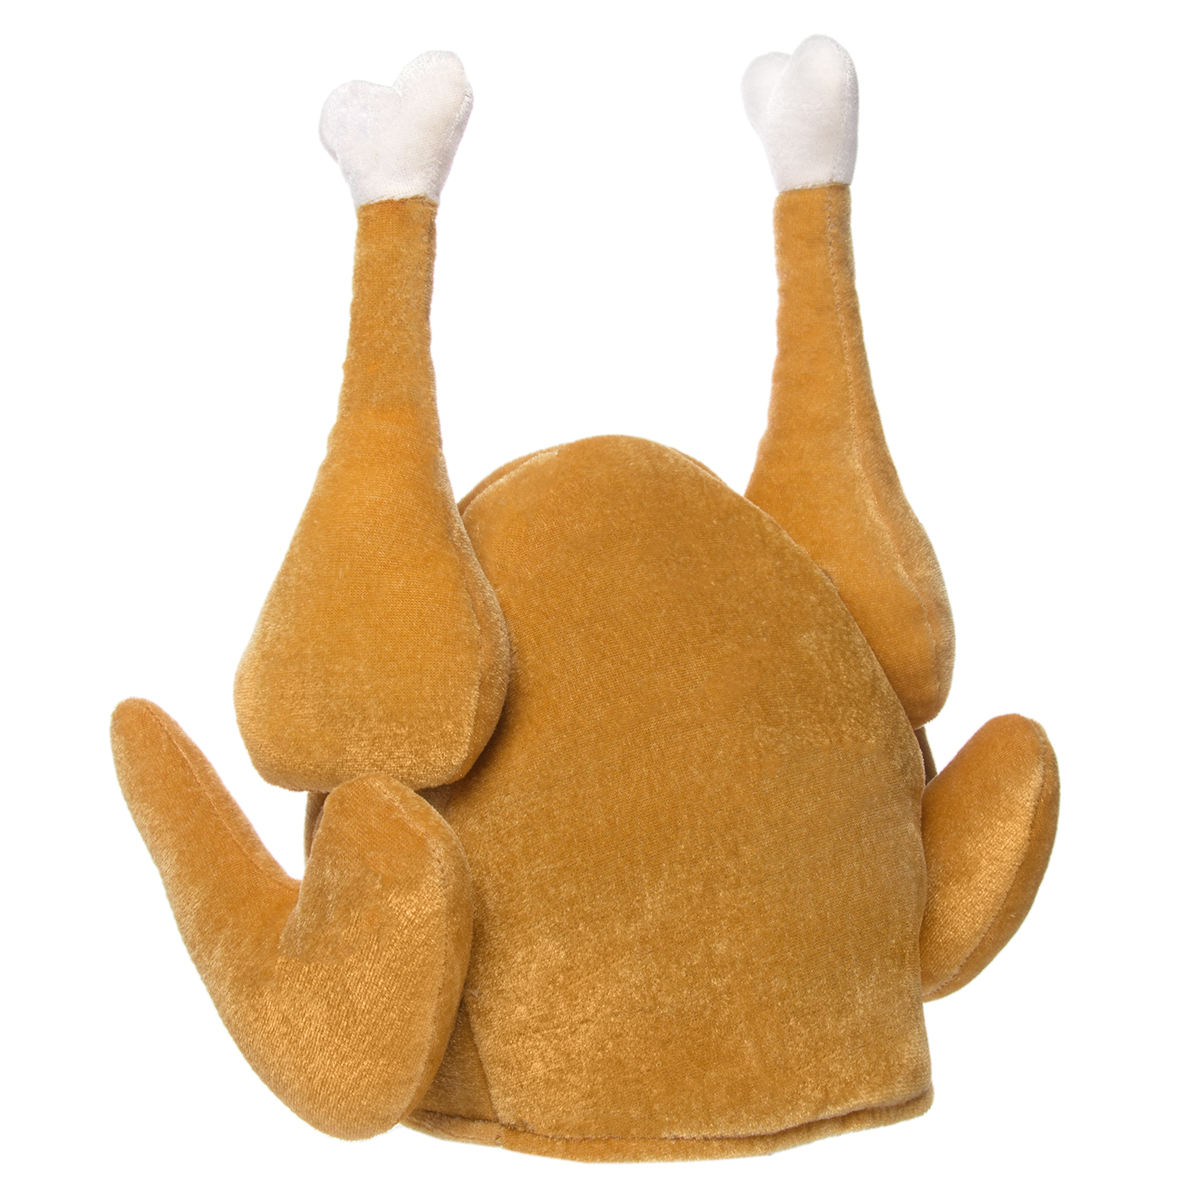 Simply Genius Plush Roasted Turkey Hats Thanksgiving Halloween Costume Holiday Trot Accessory